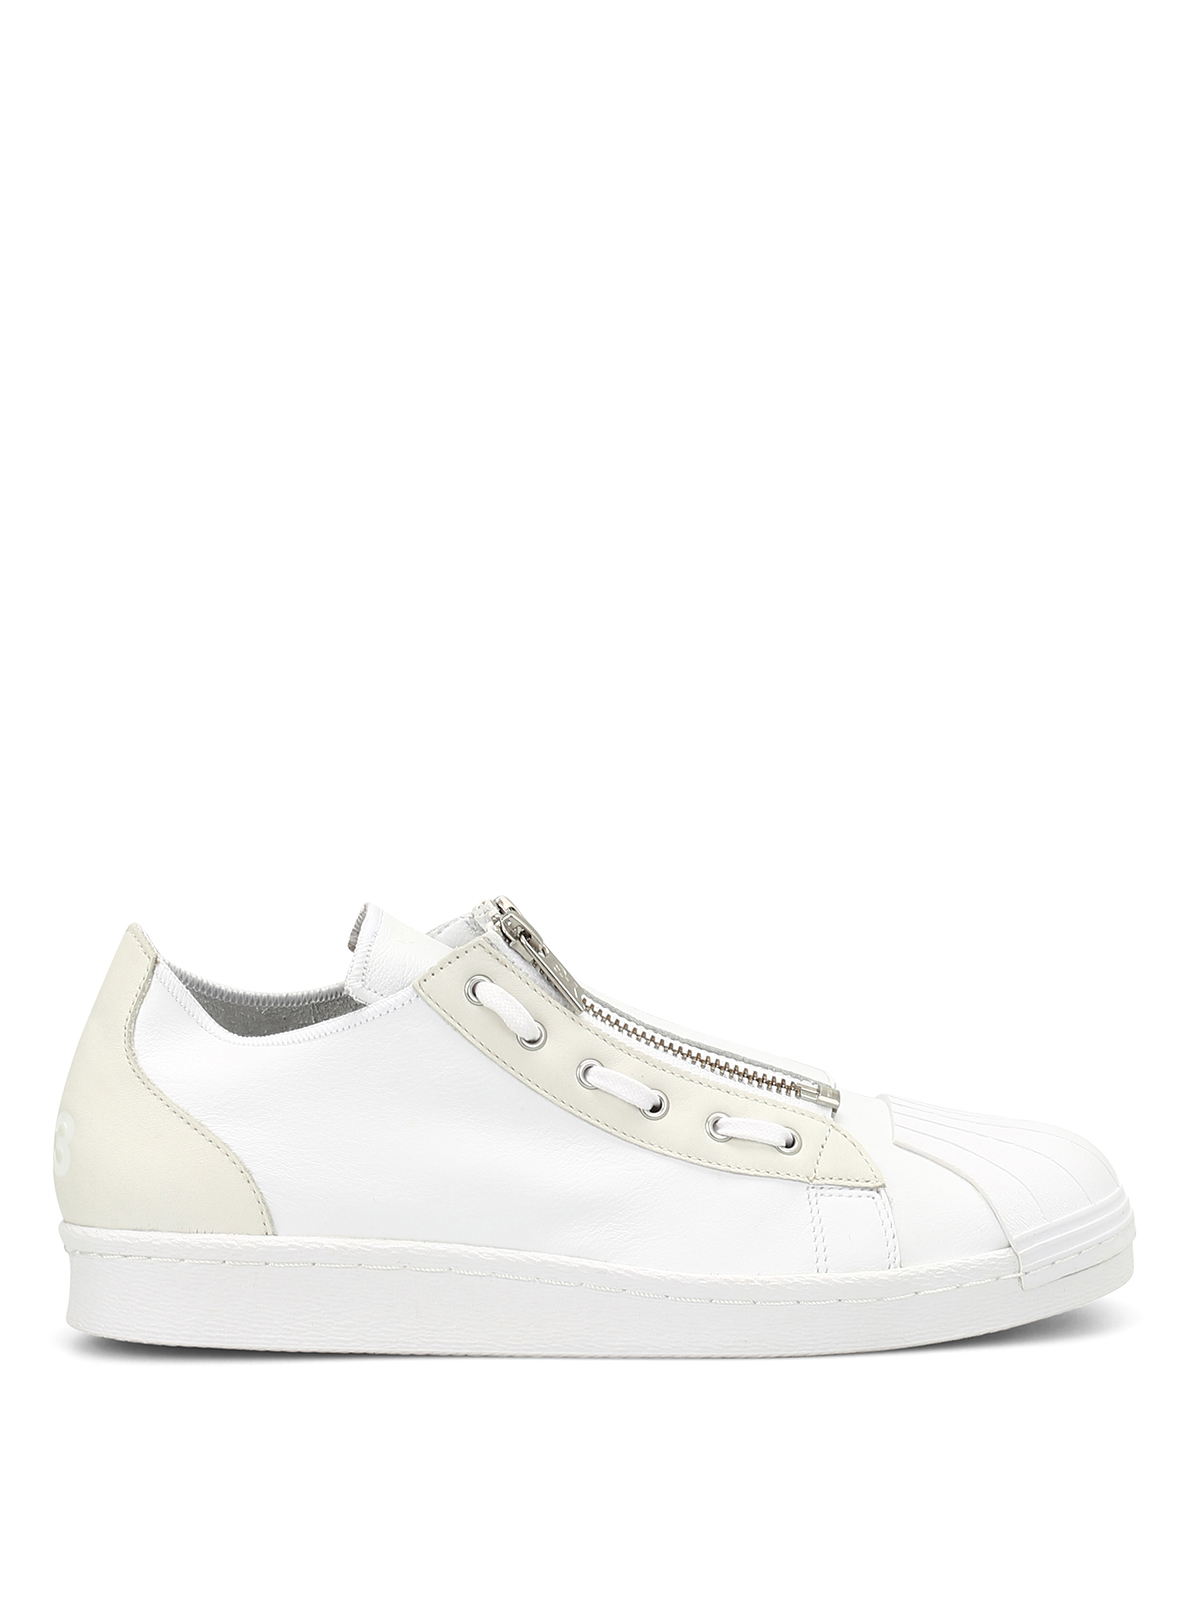 6a8daa653 Adidas Y-3 - Super Zip unlined sneakers - trainers - CG3210 WHITE